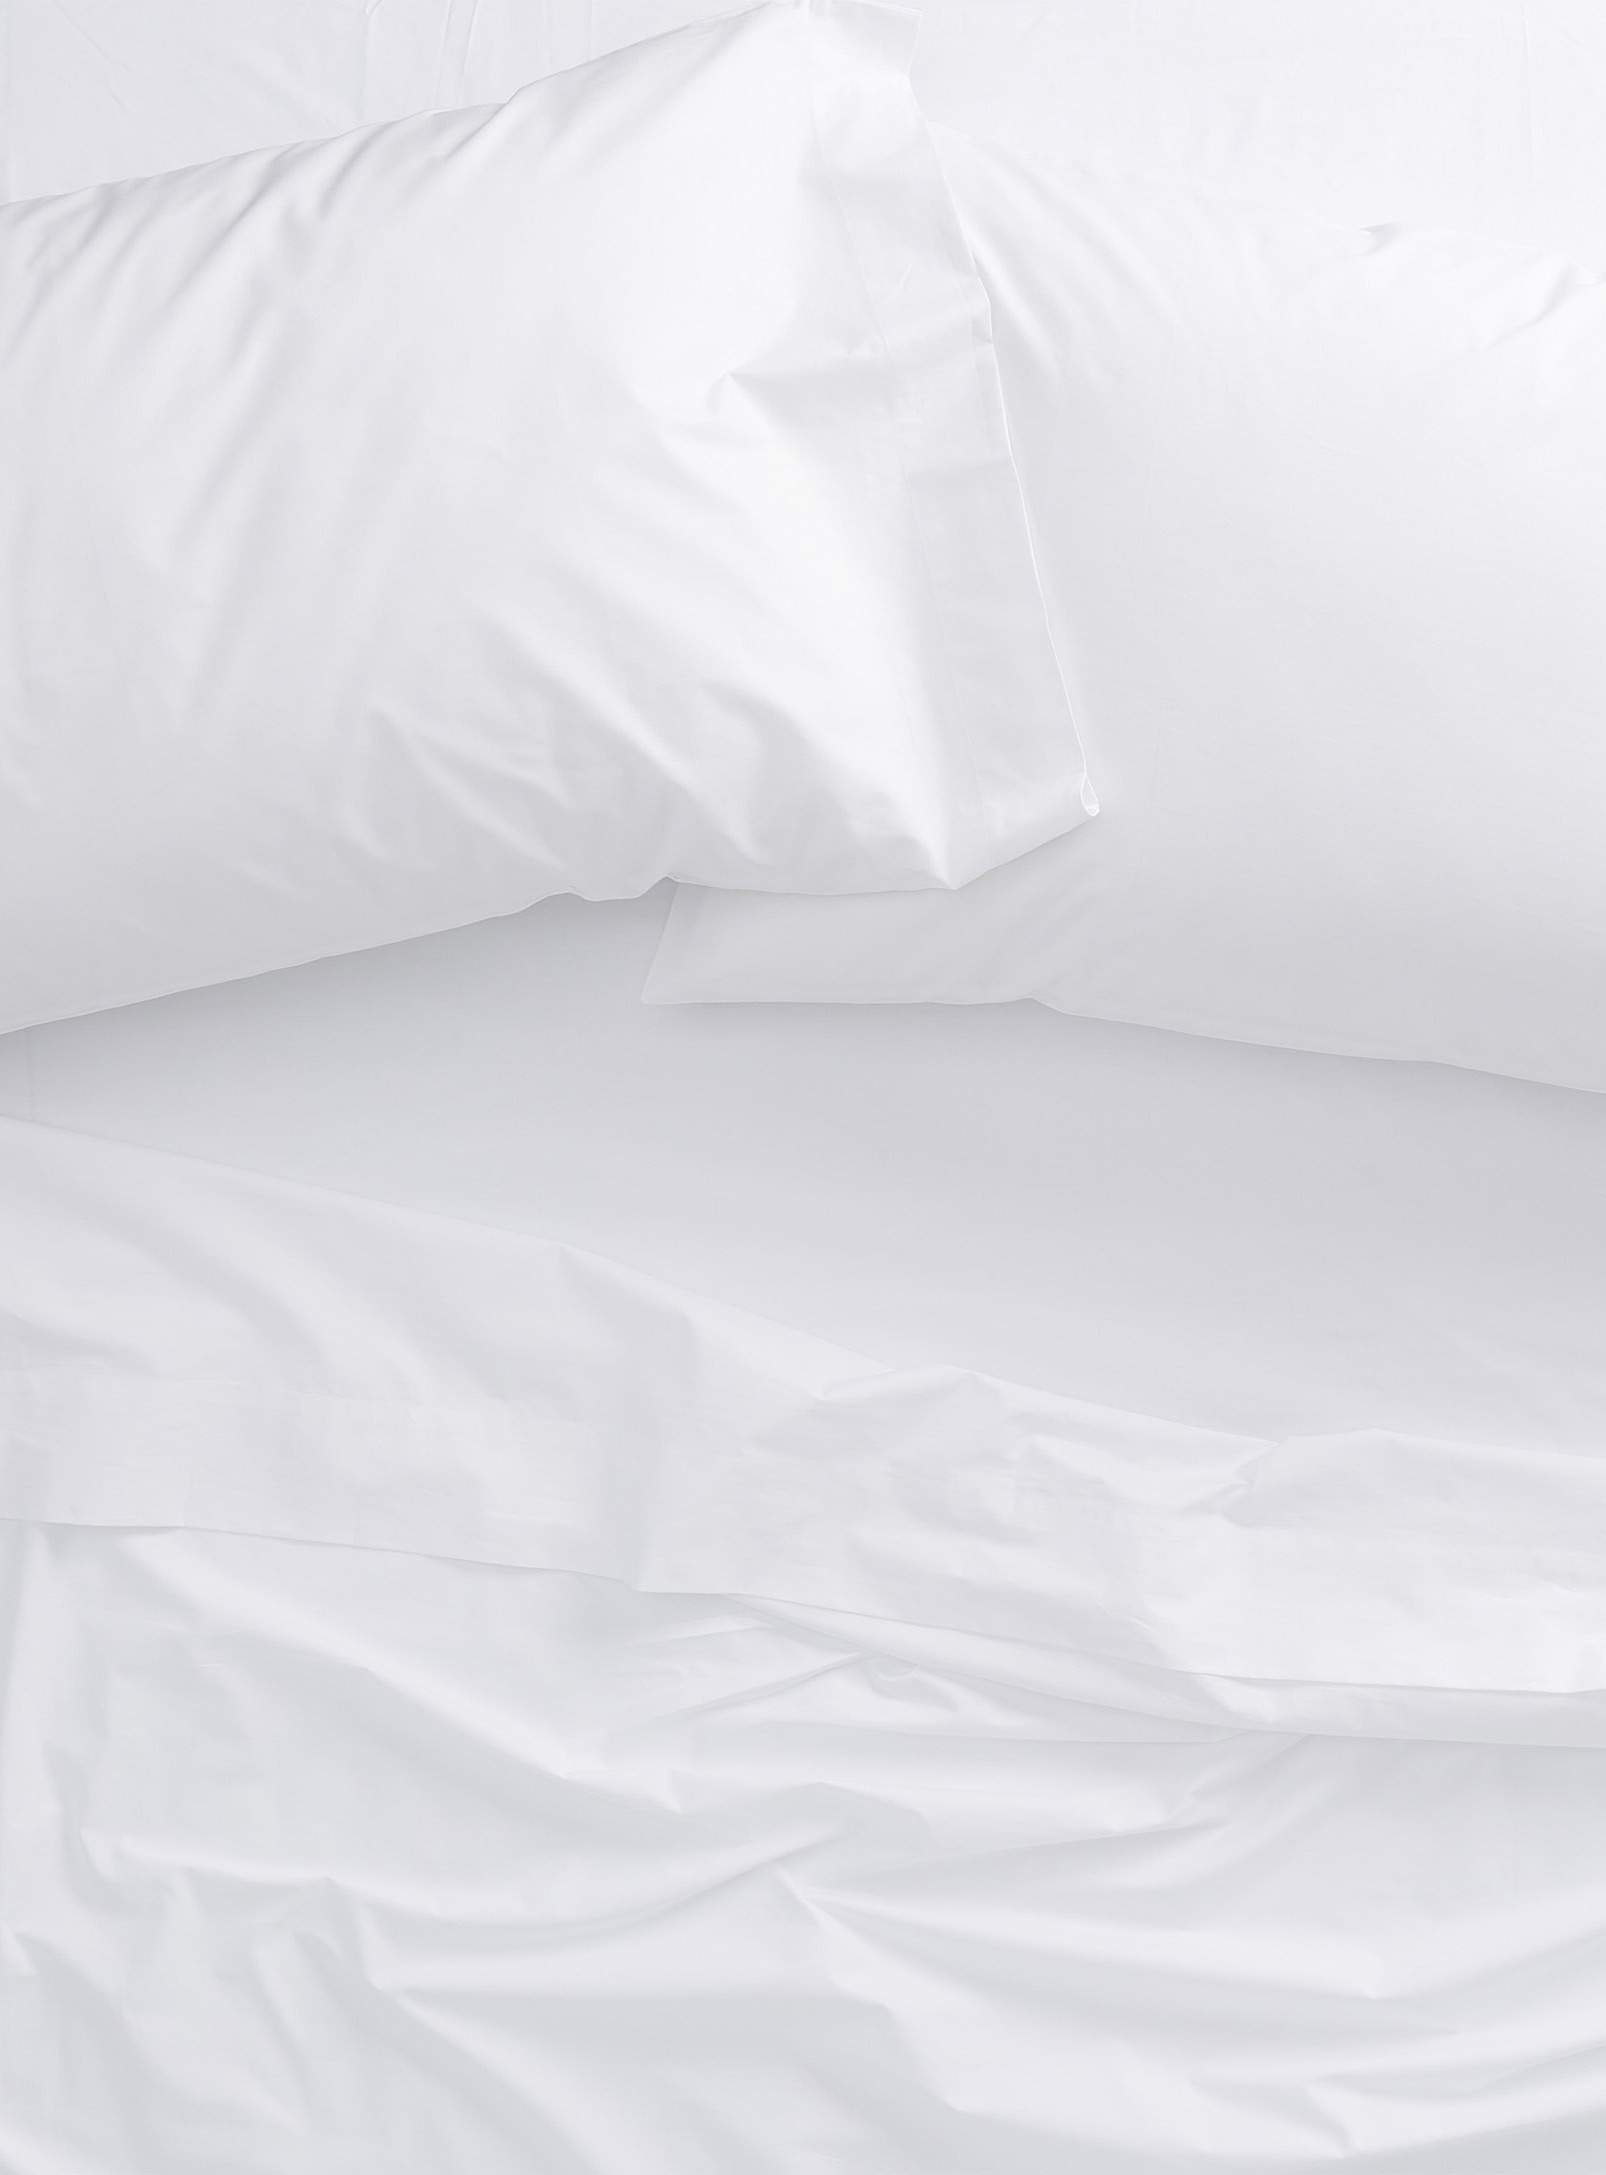 Simons - La Maison Simons Luxurious Percale Bed Sheets White